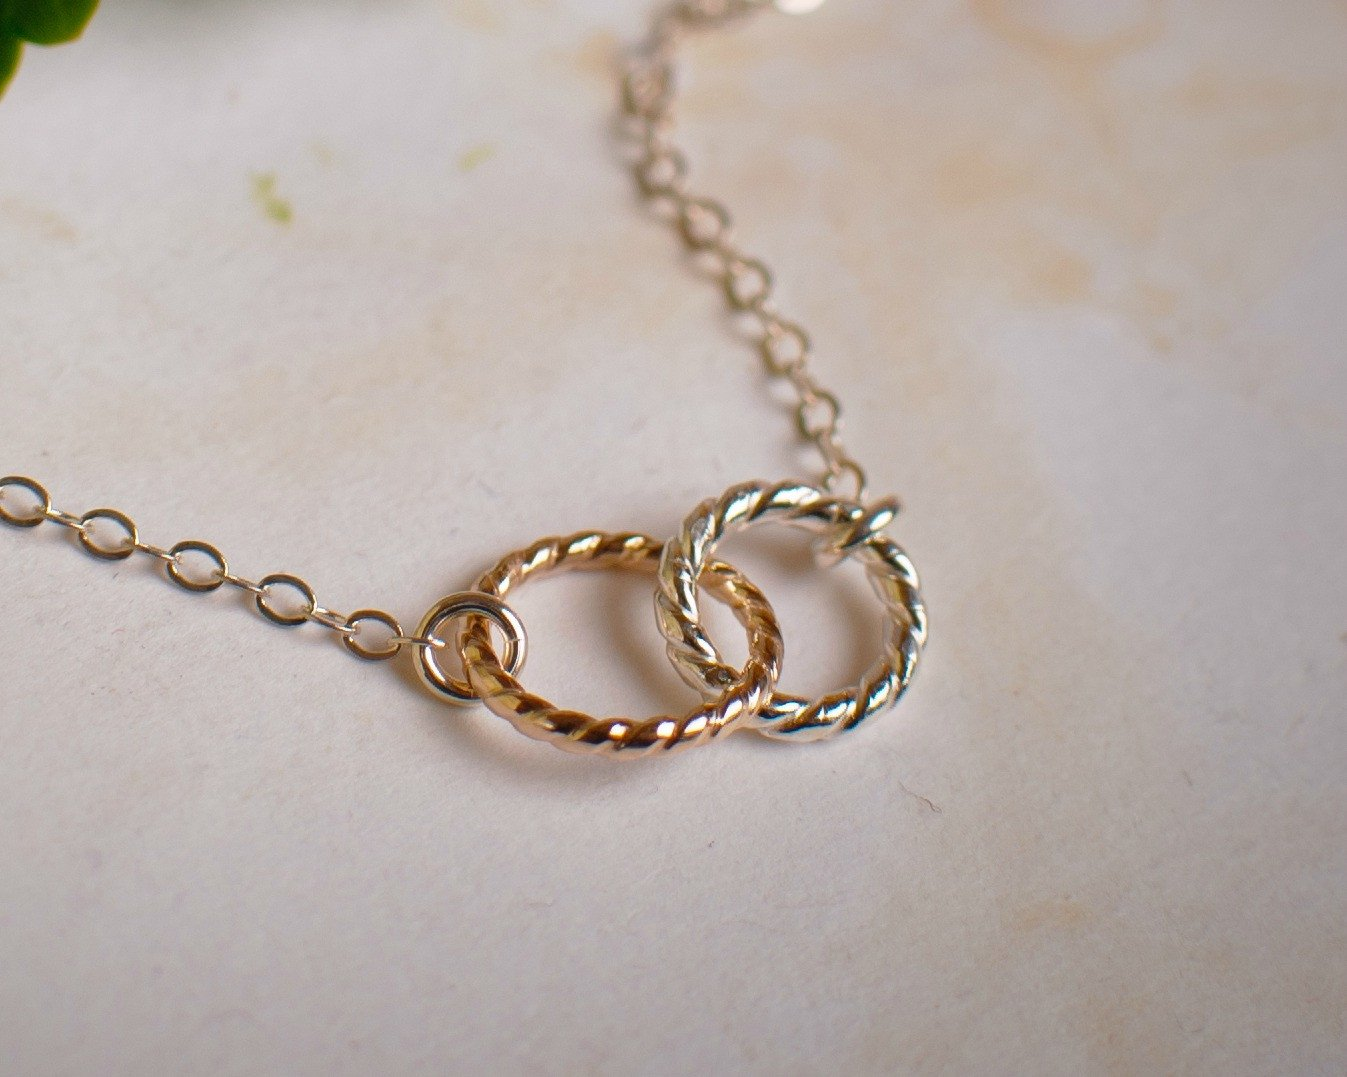 necklace fullxfull au zoom daughter daughters jewelrymother three infinity il mother listing and mpsq